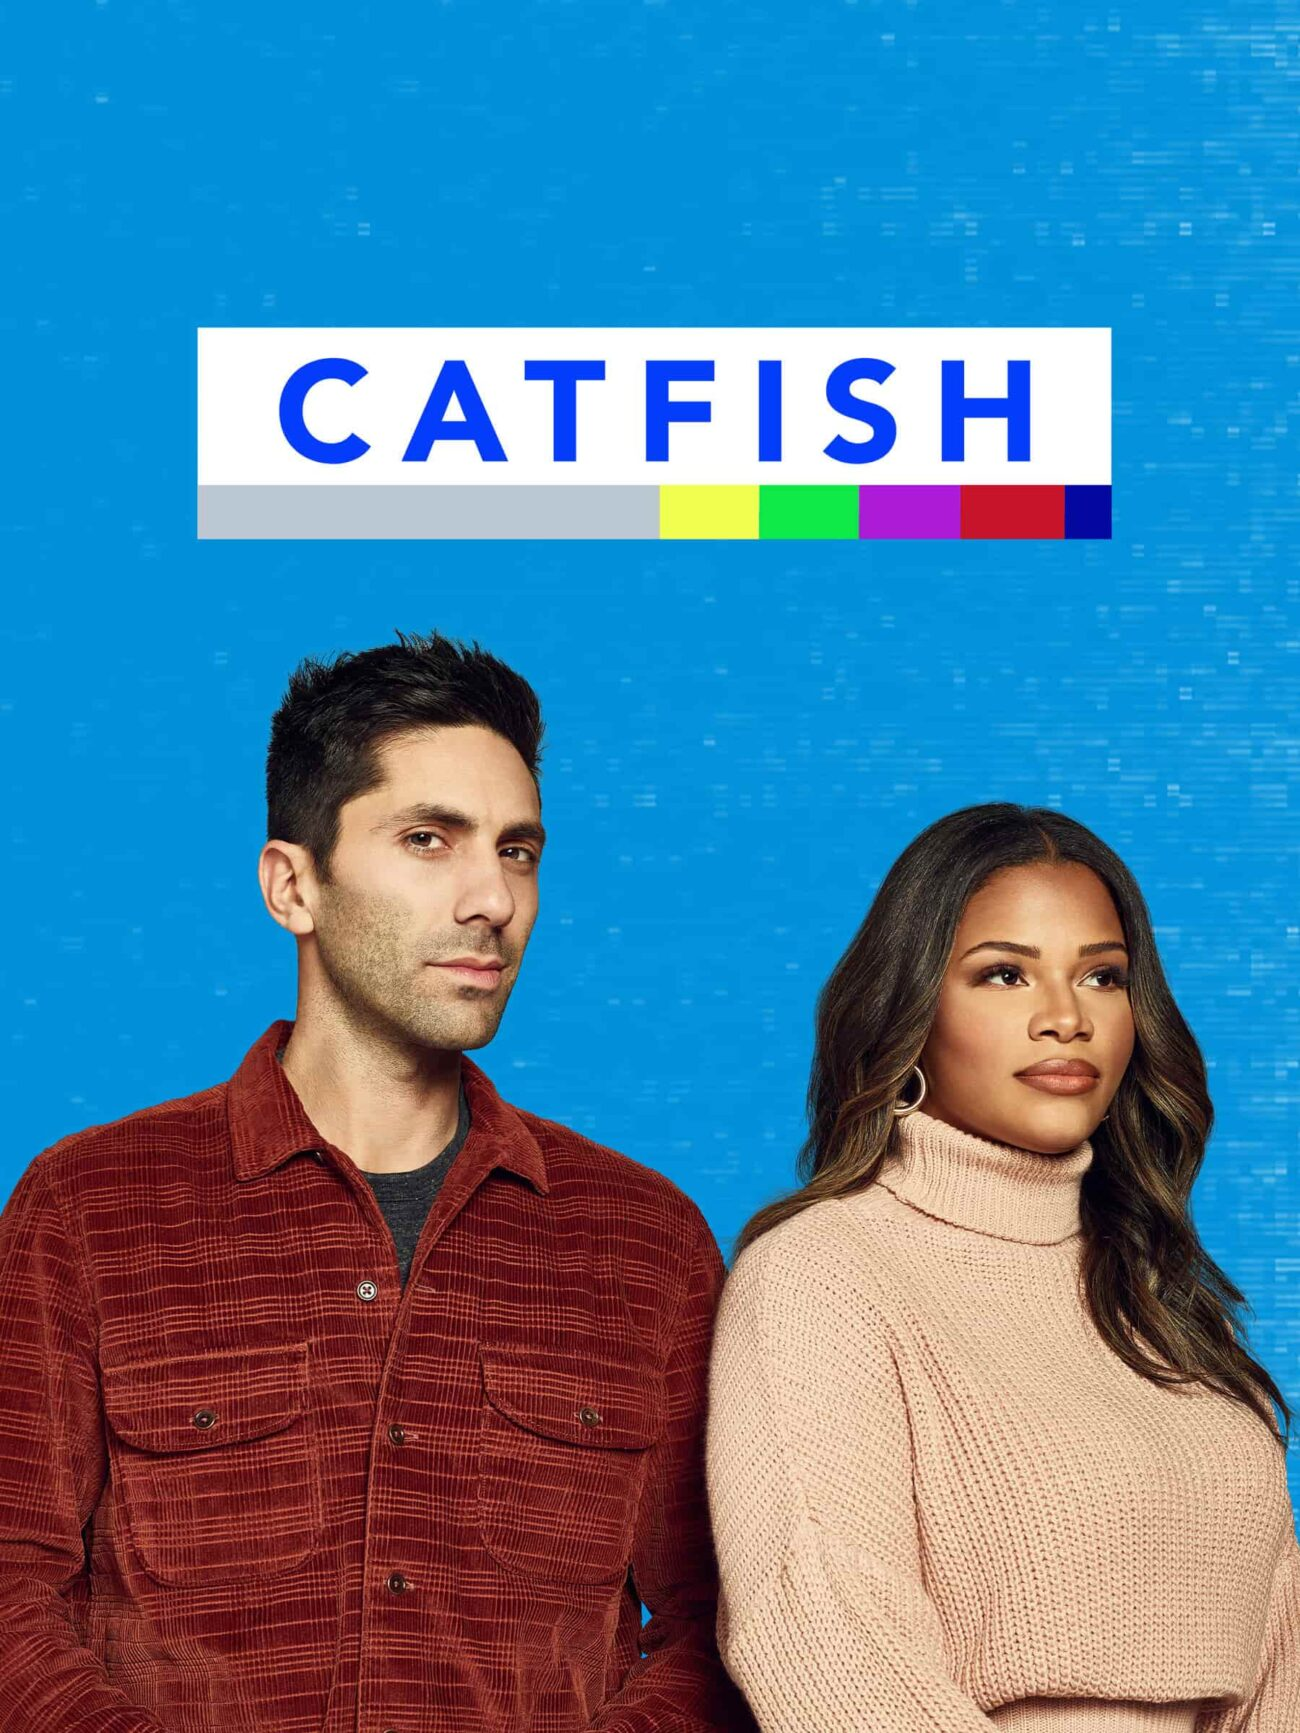 Remember all the wild times on the 'Catfish' TV show? If you need a refresher, laugh along with us here as we take you back to all the funniest moments.